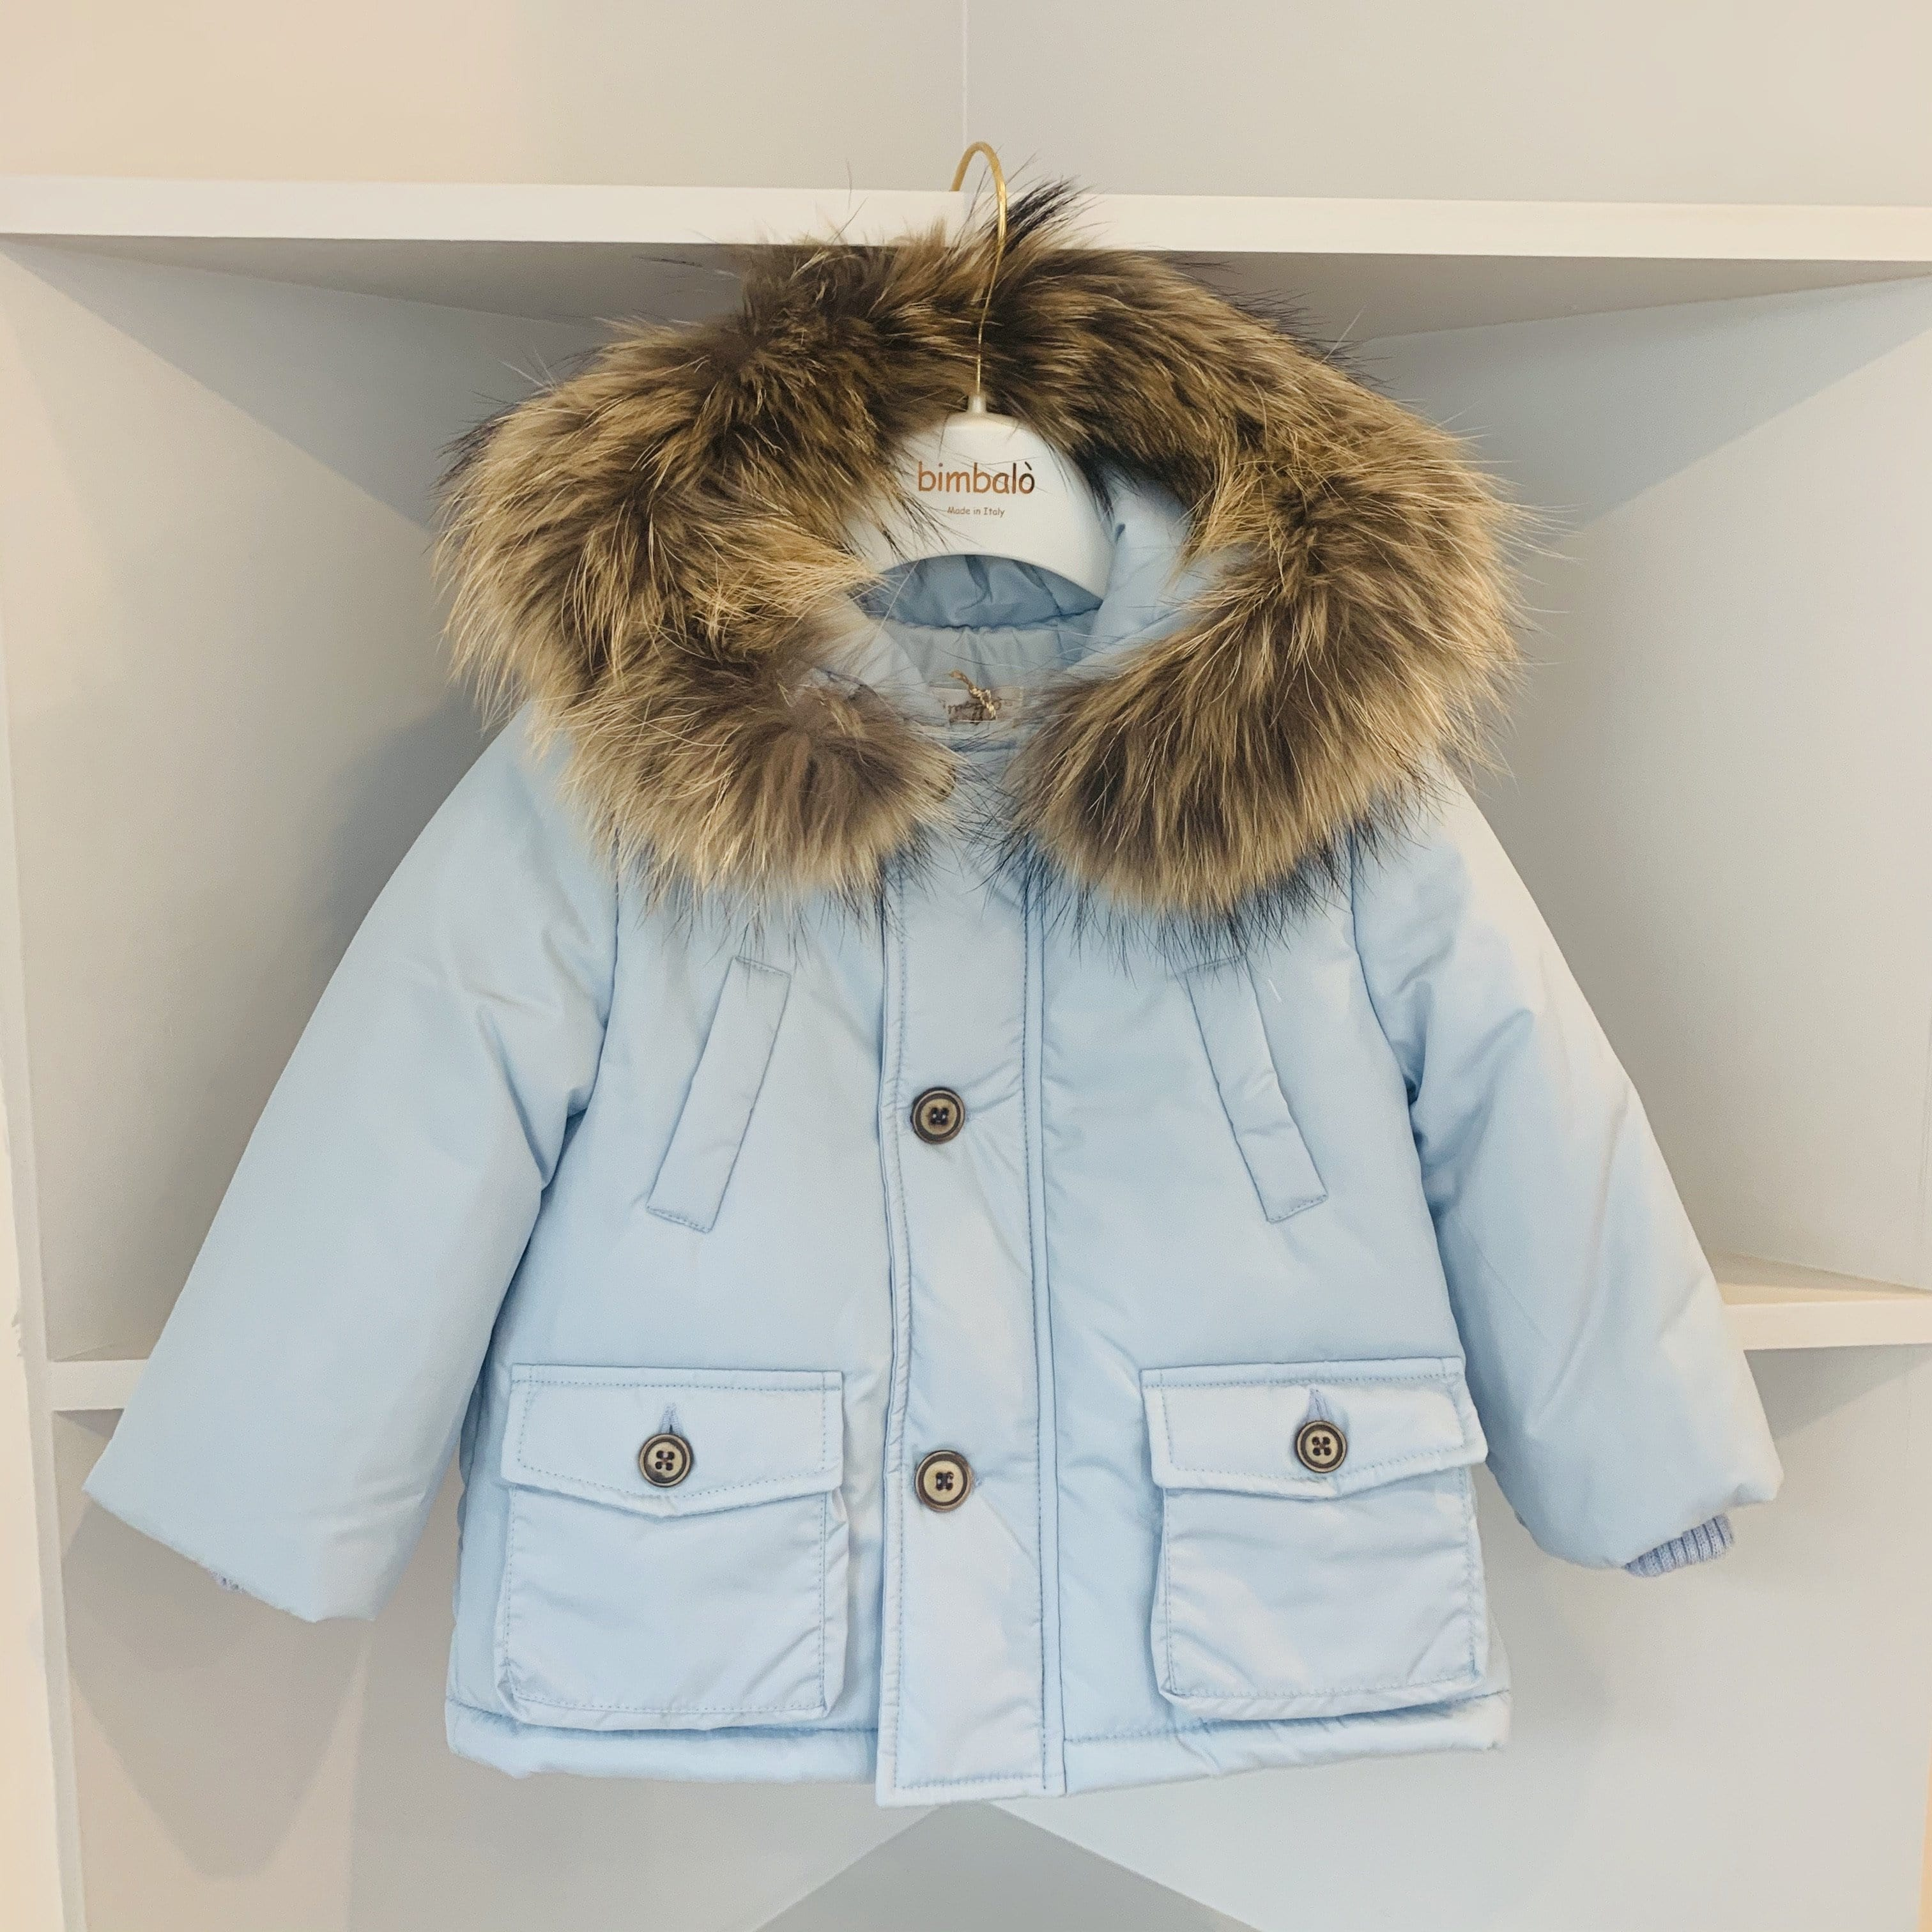 BIMBALO BABY BLUE BOYS COAT